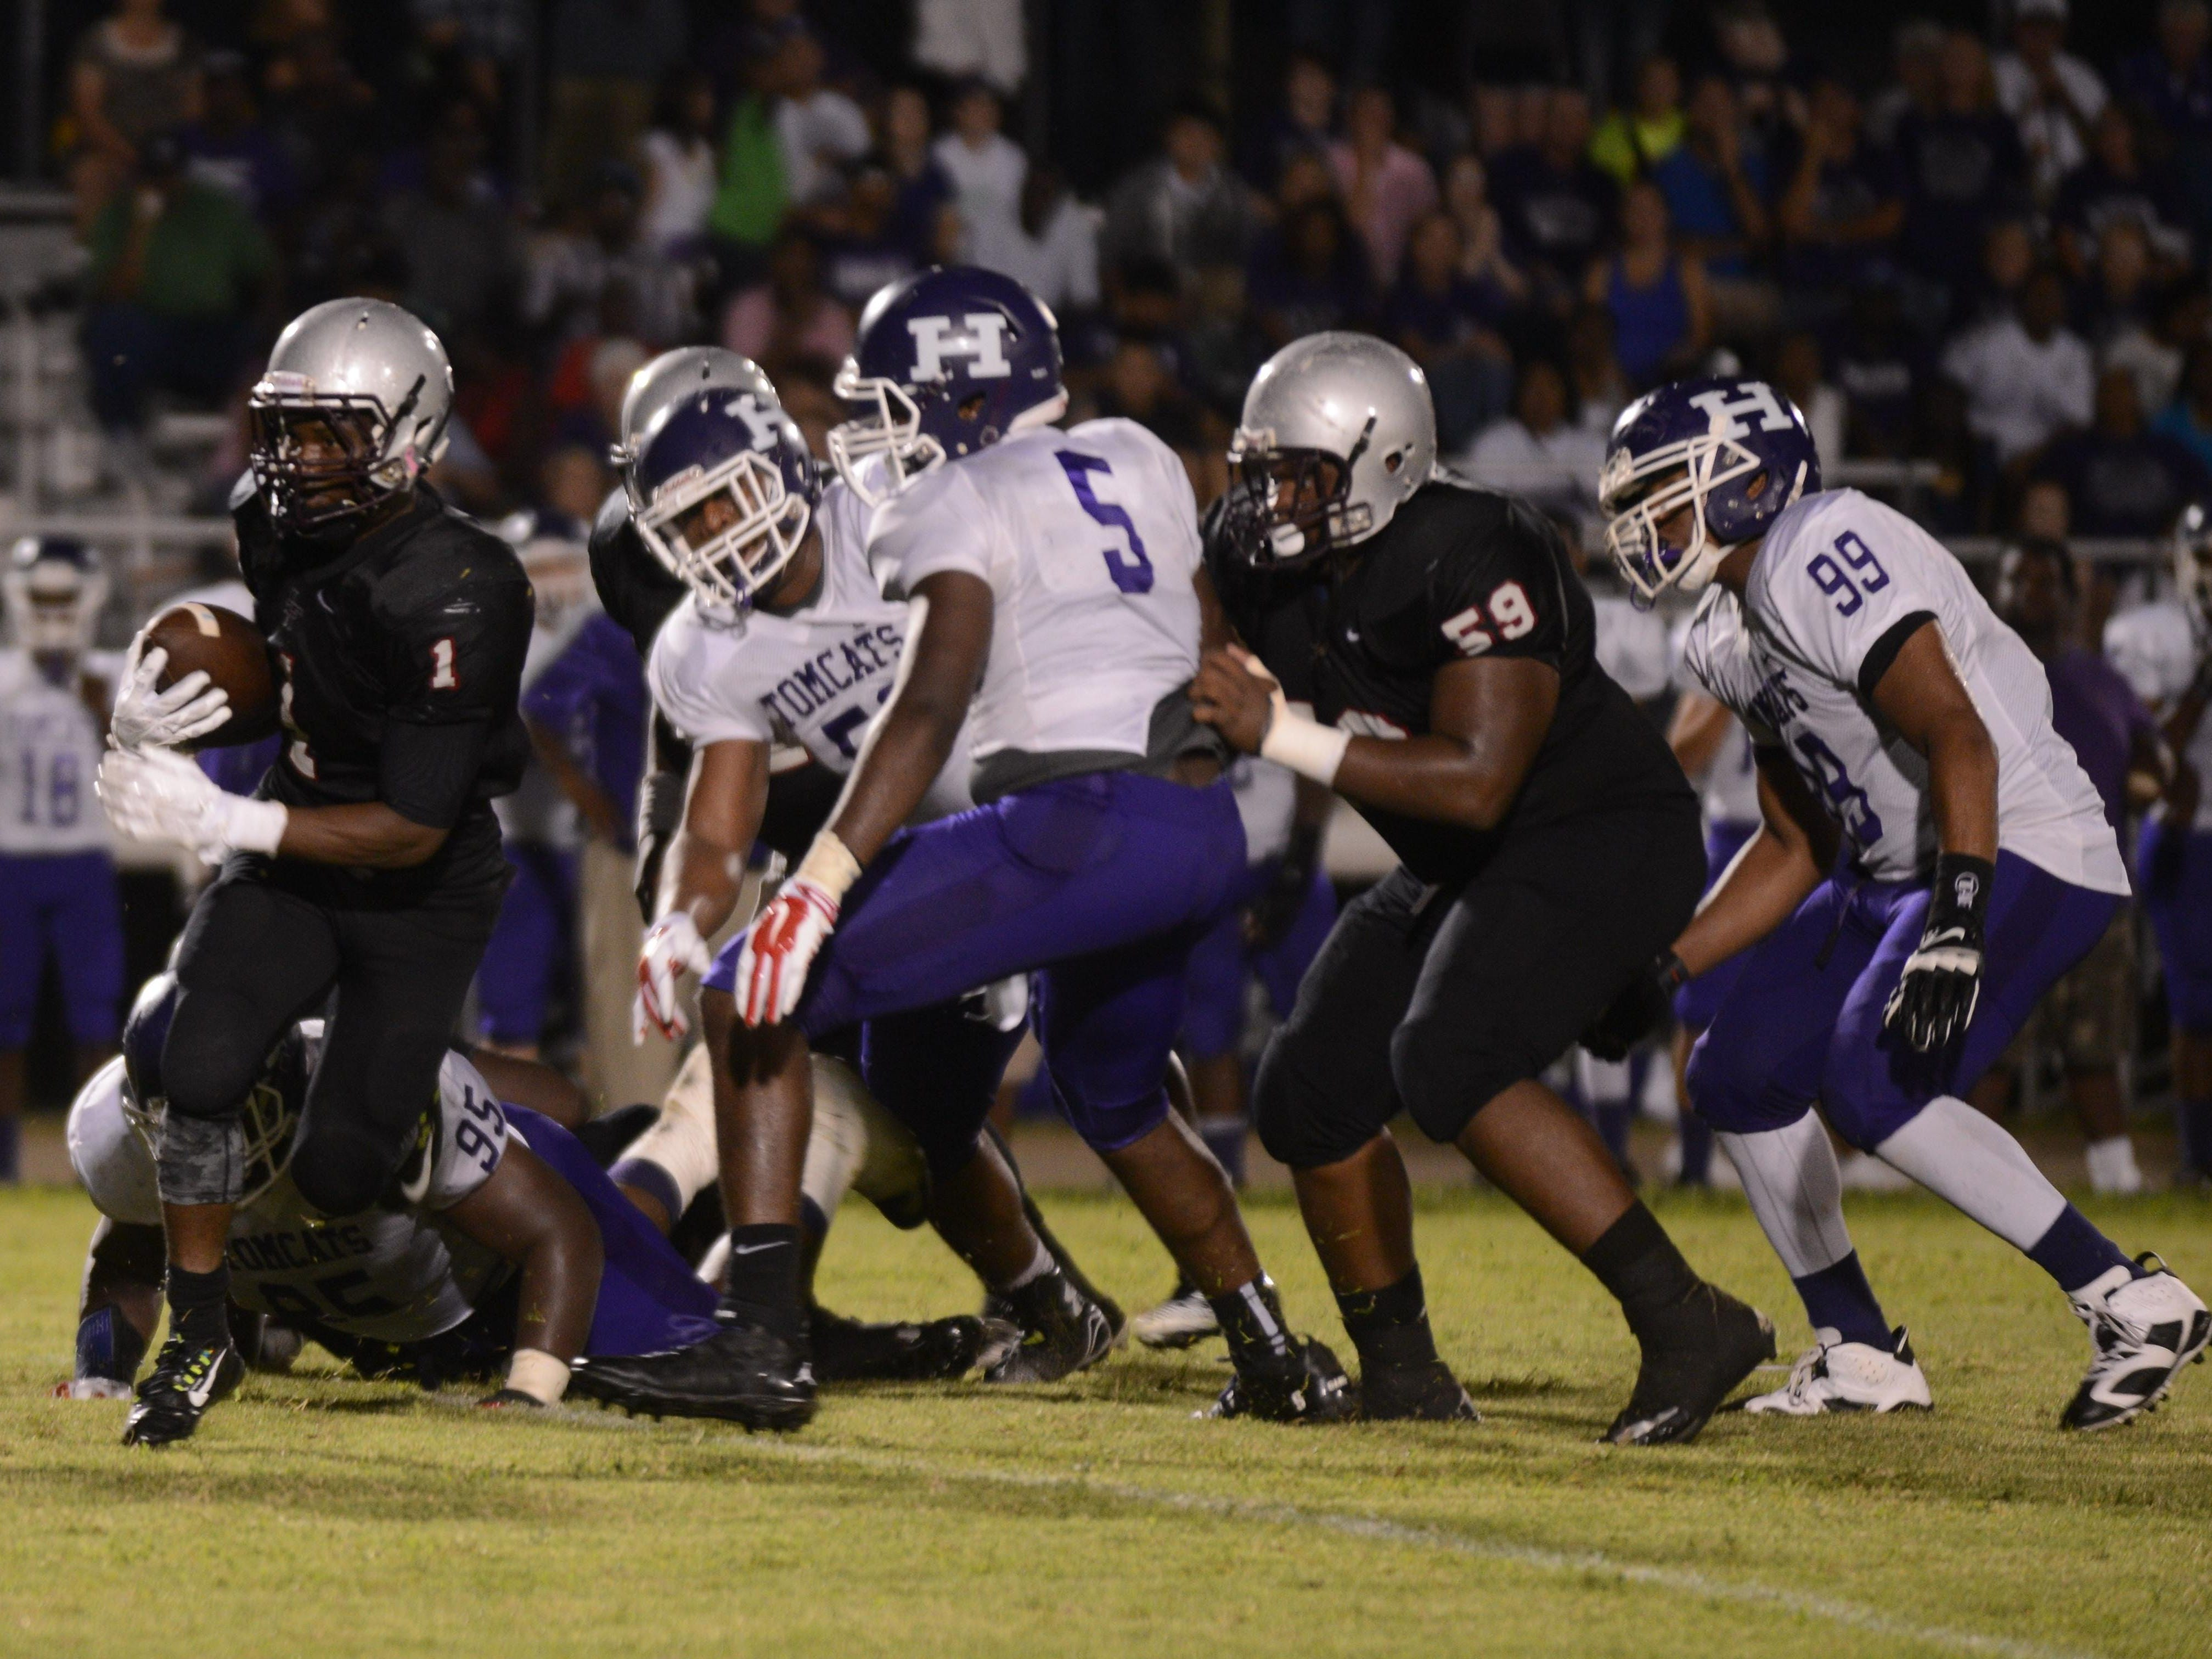 Haywood's football team, seen here in a game against Liberty last year, is among the list of local teams whose schedules have changed because of scheduling mishaps originating in Memphis.